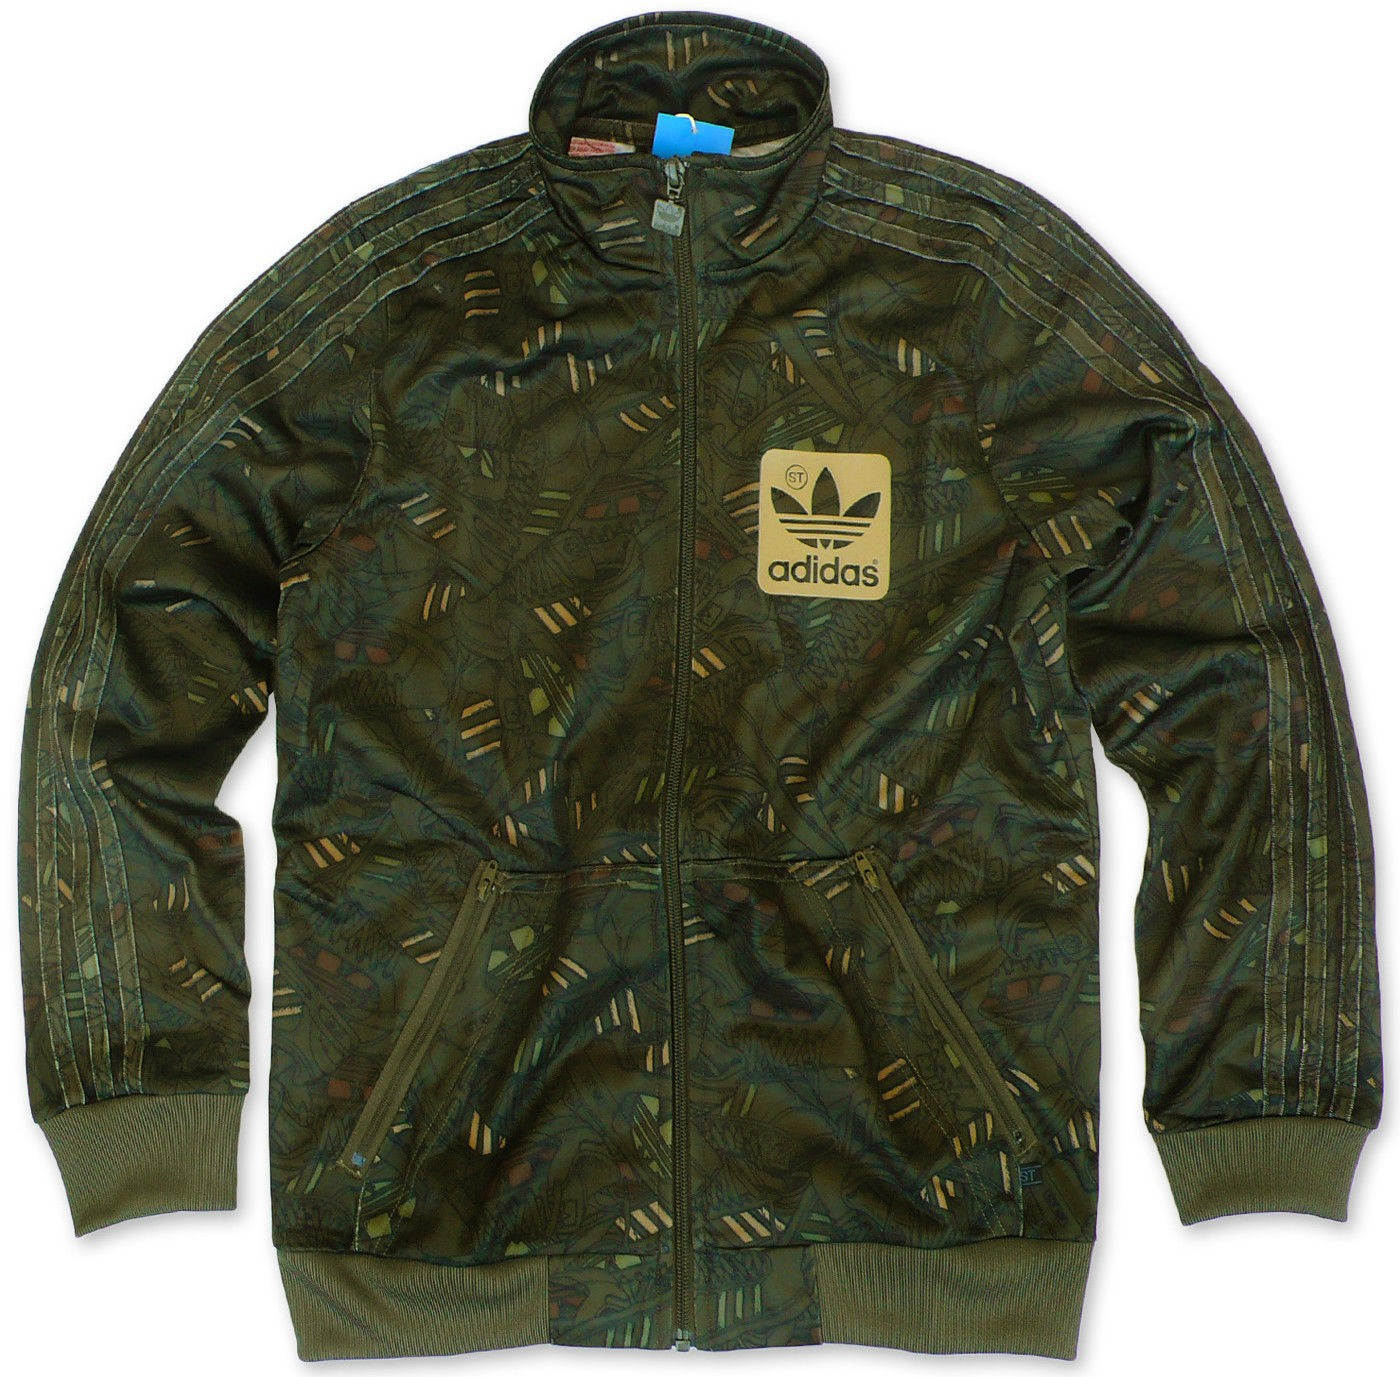 adidas originals superstar camo jungen jacke trainingsjacke oliv 128 176 ebay. Black Bedroom Furniture Sets. Home Design Ideas